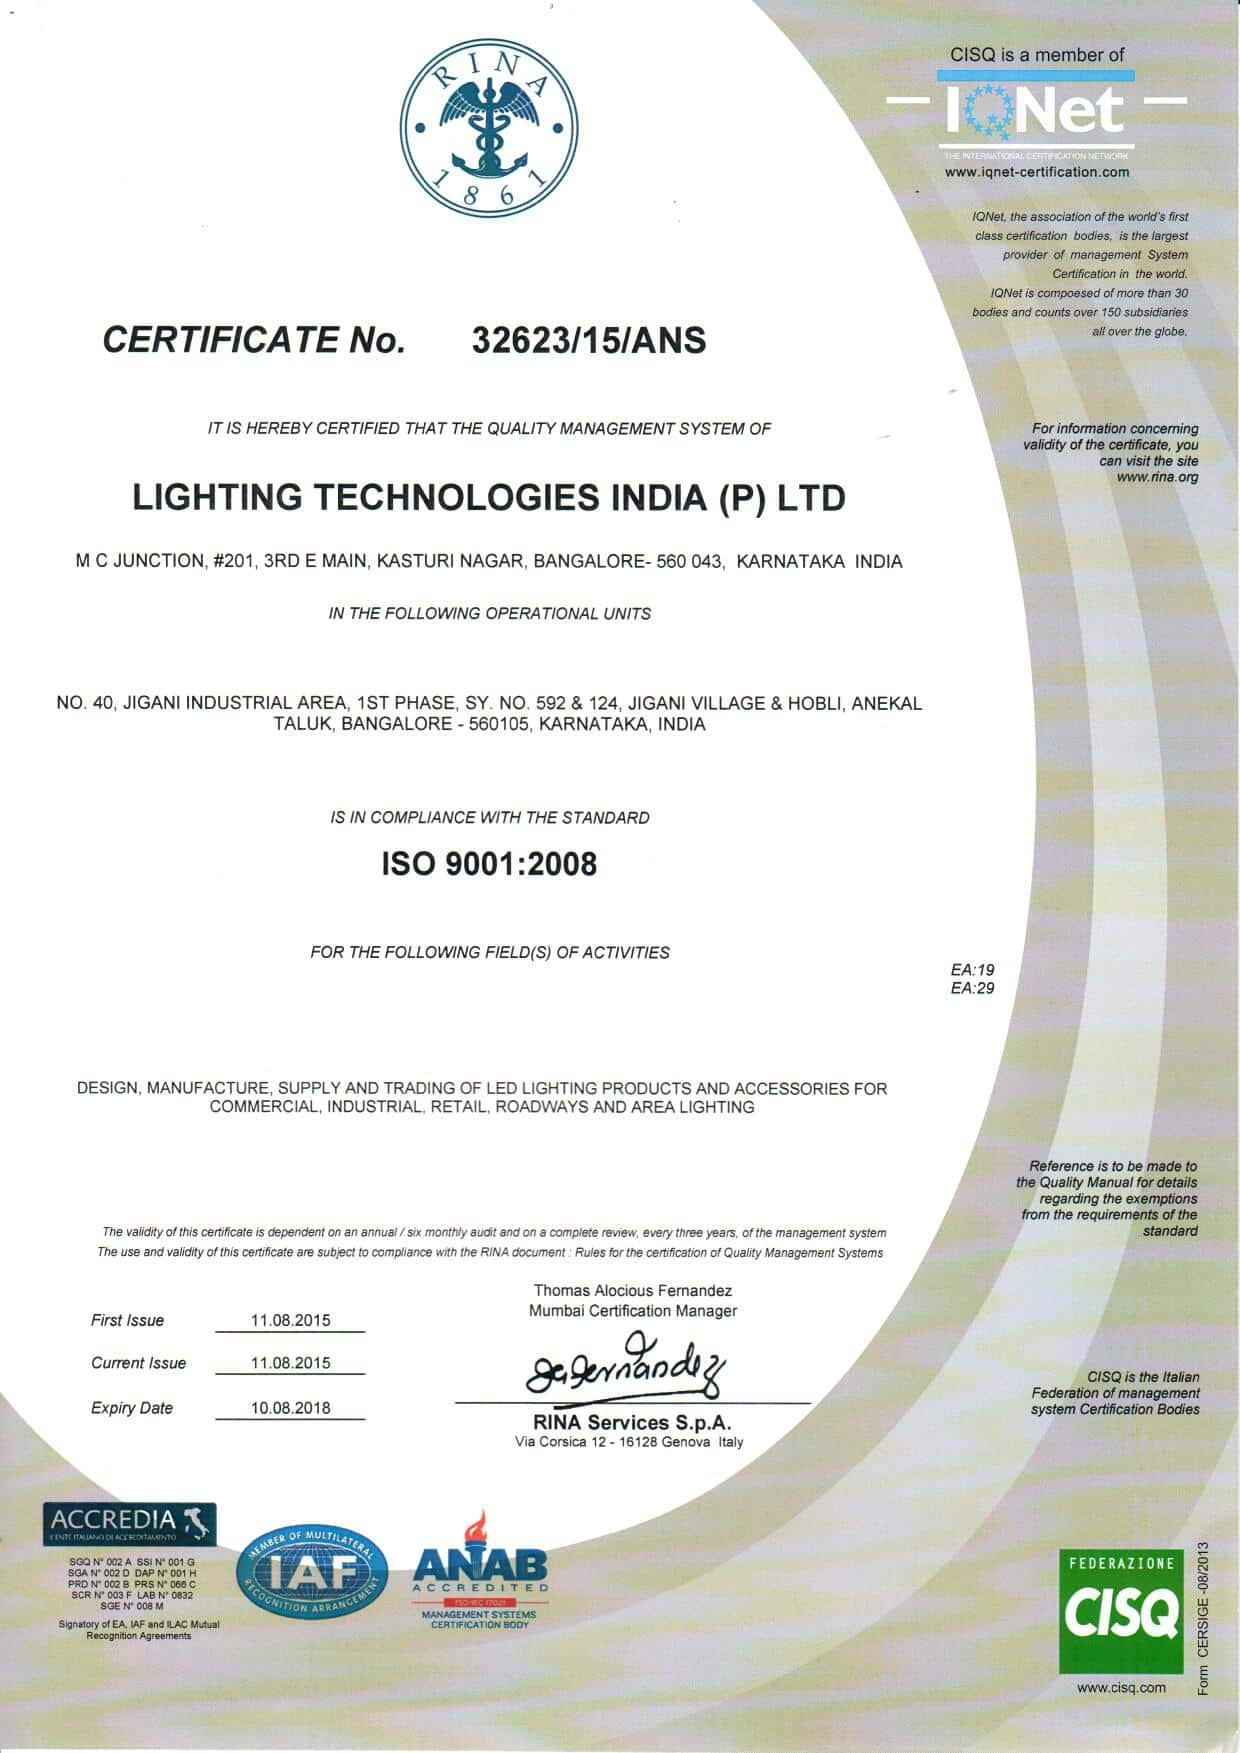 Industry certifications lighting technologies igc is iso 9001 quality management system certified since 2008 xflitez Choice Image